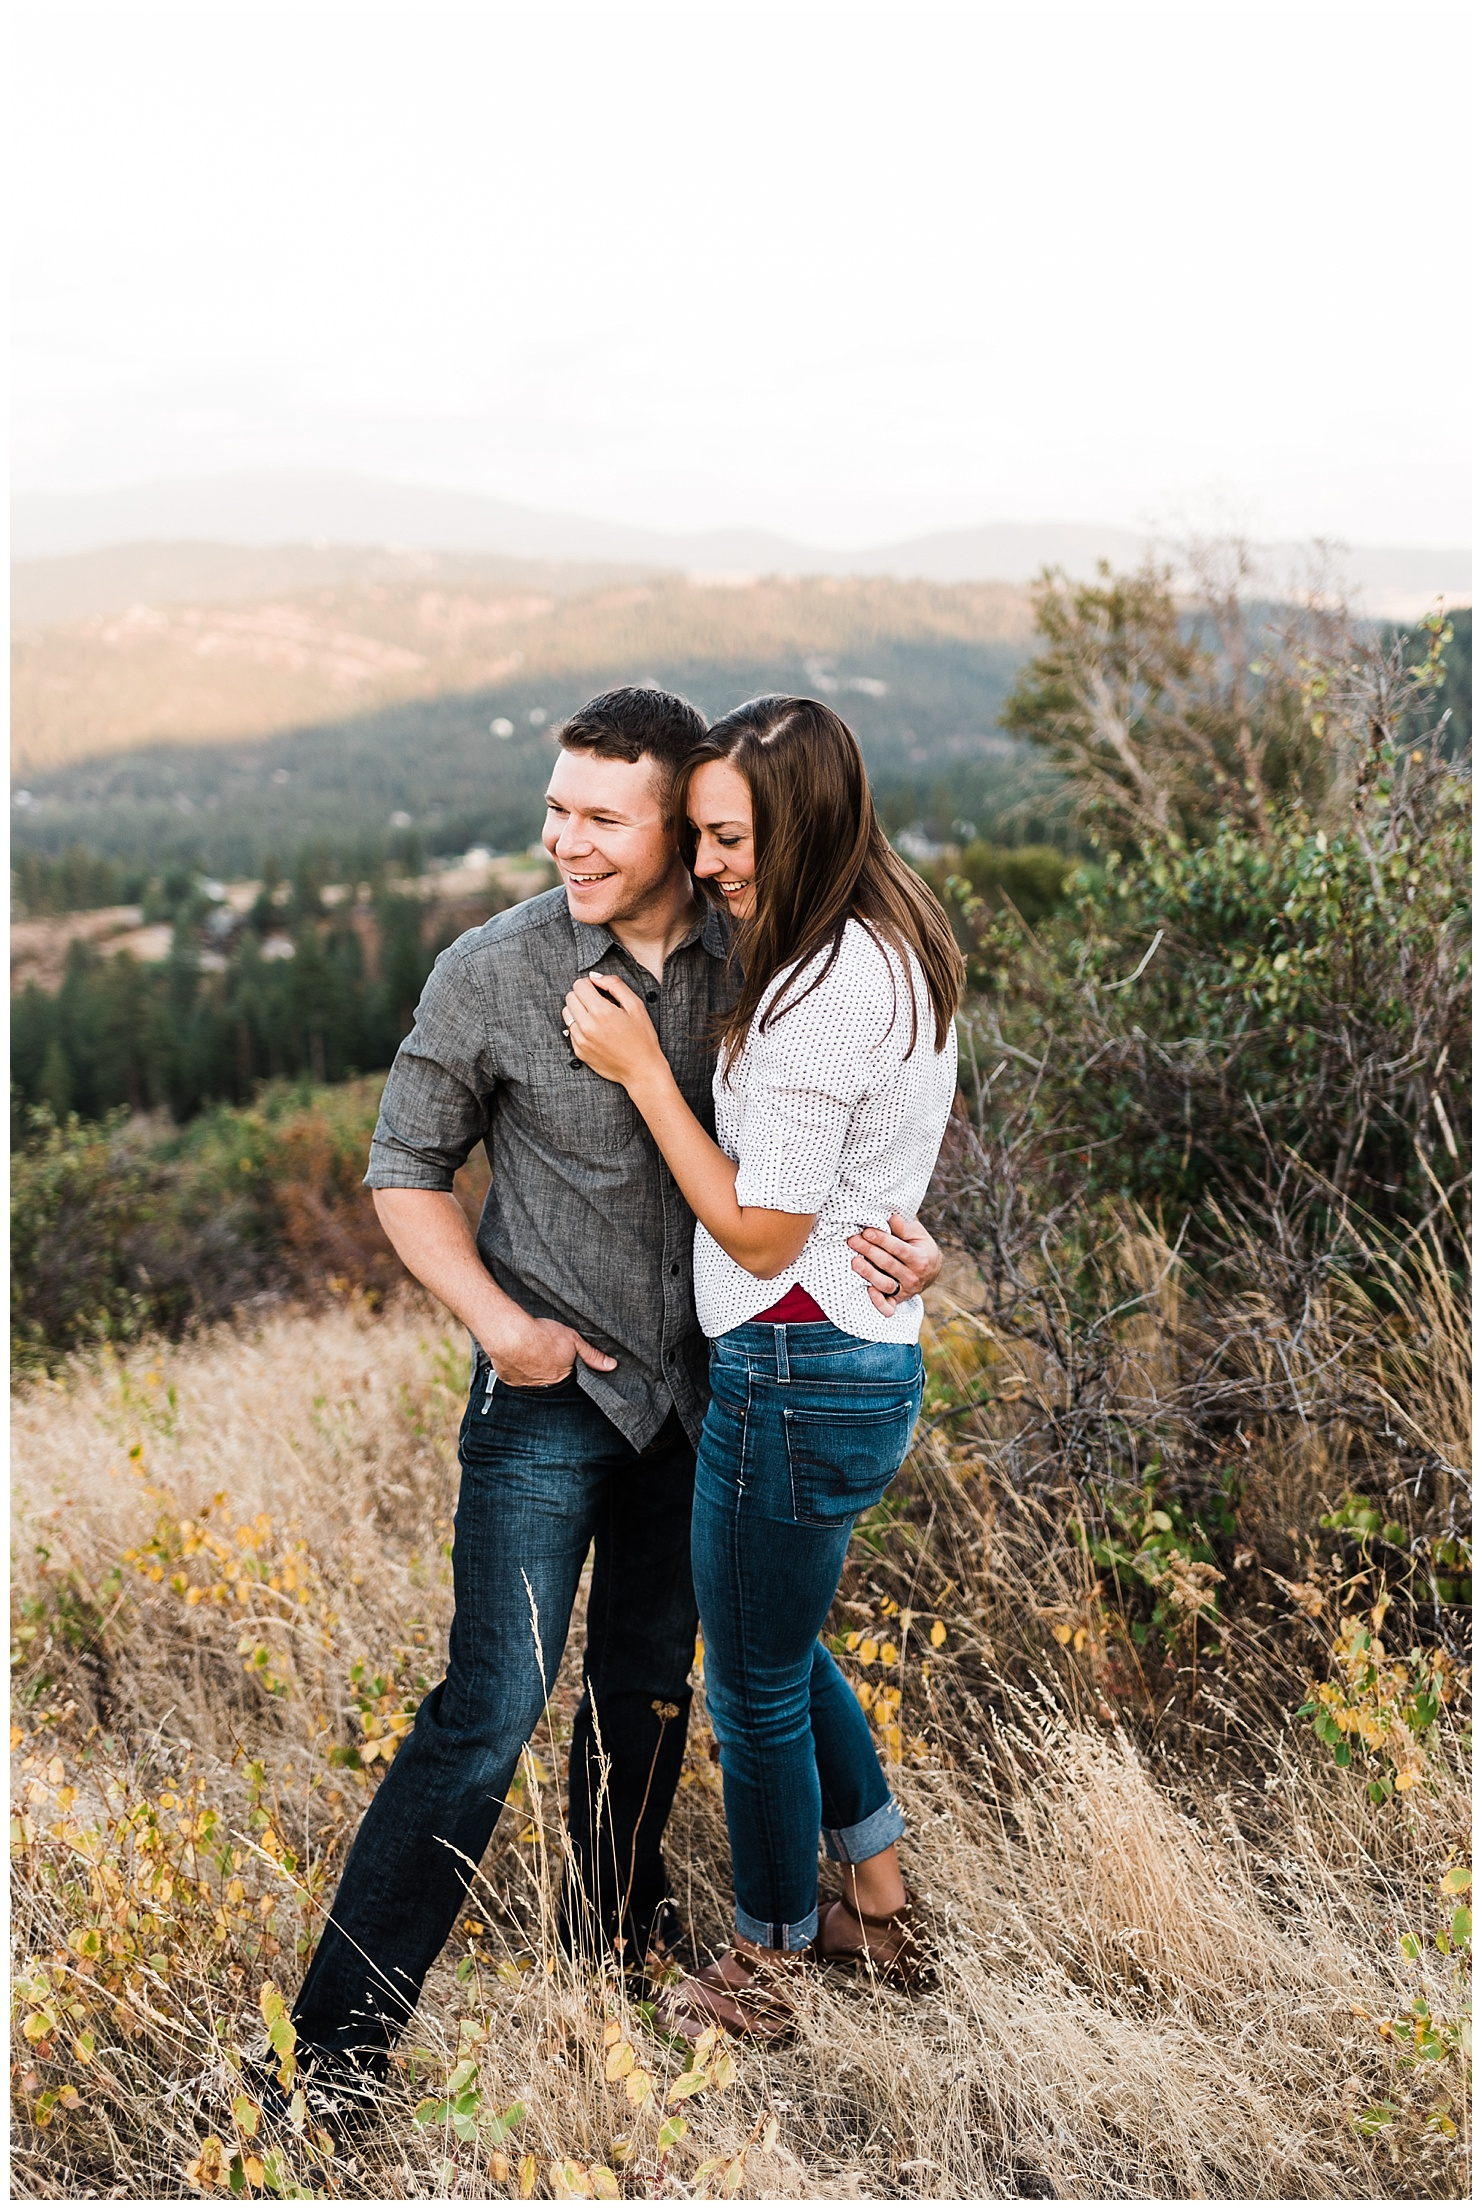 Iller Creek Couples Session in Spokane Washington